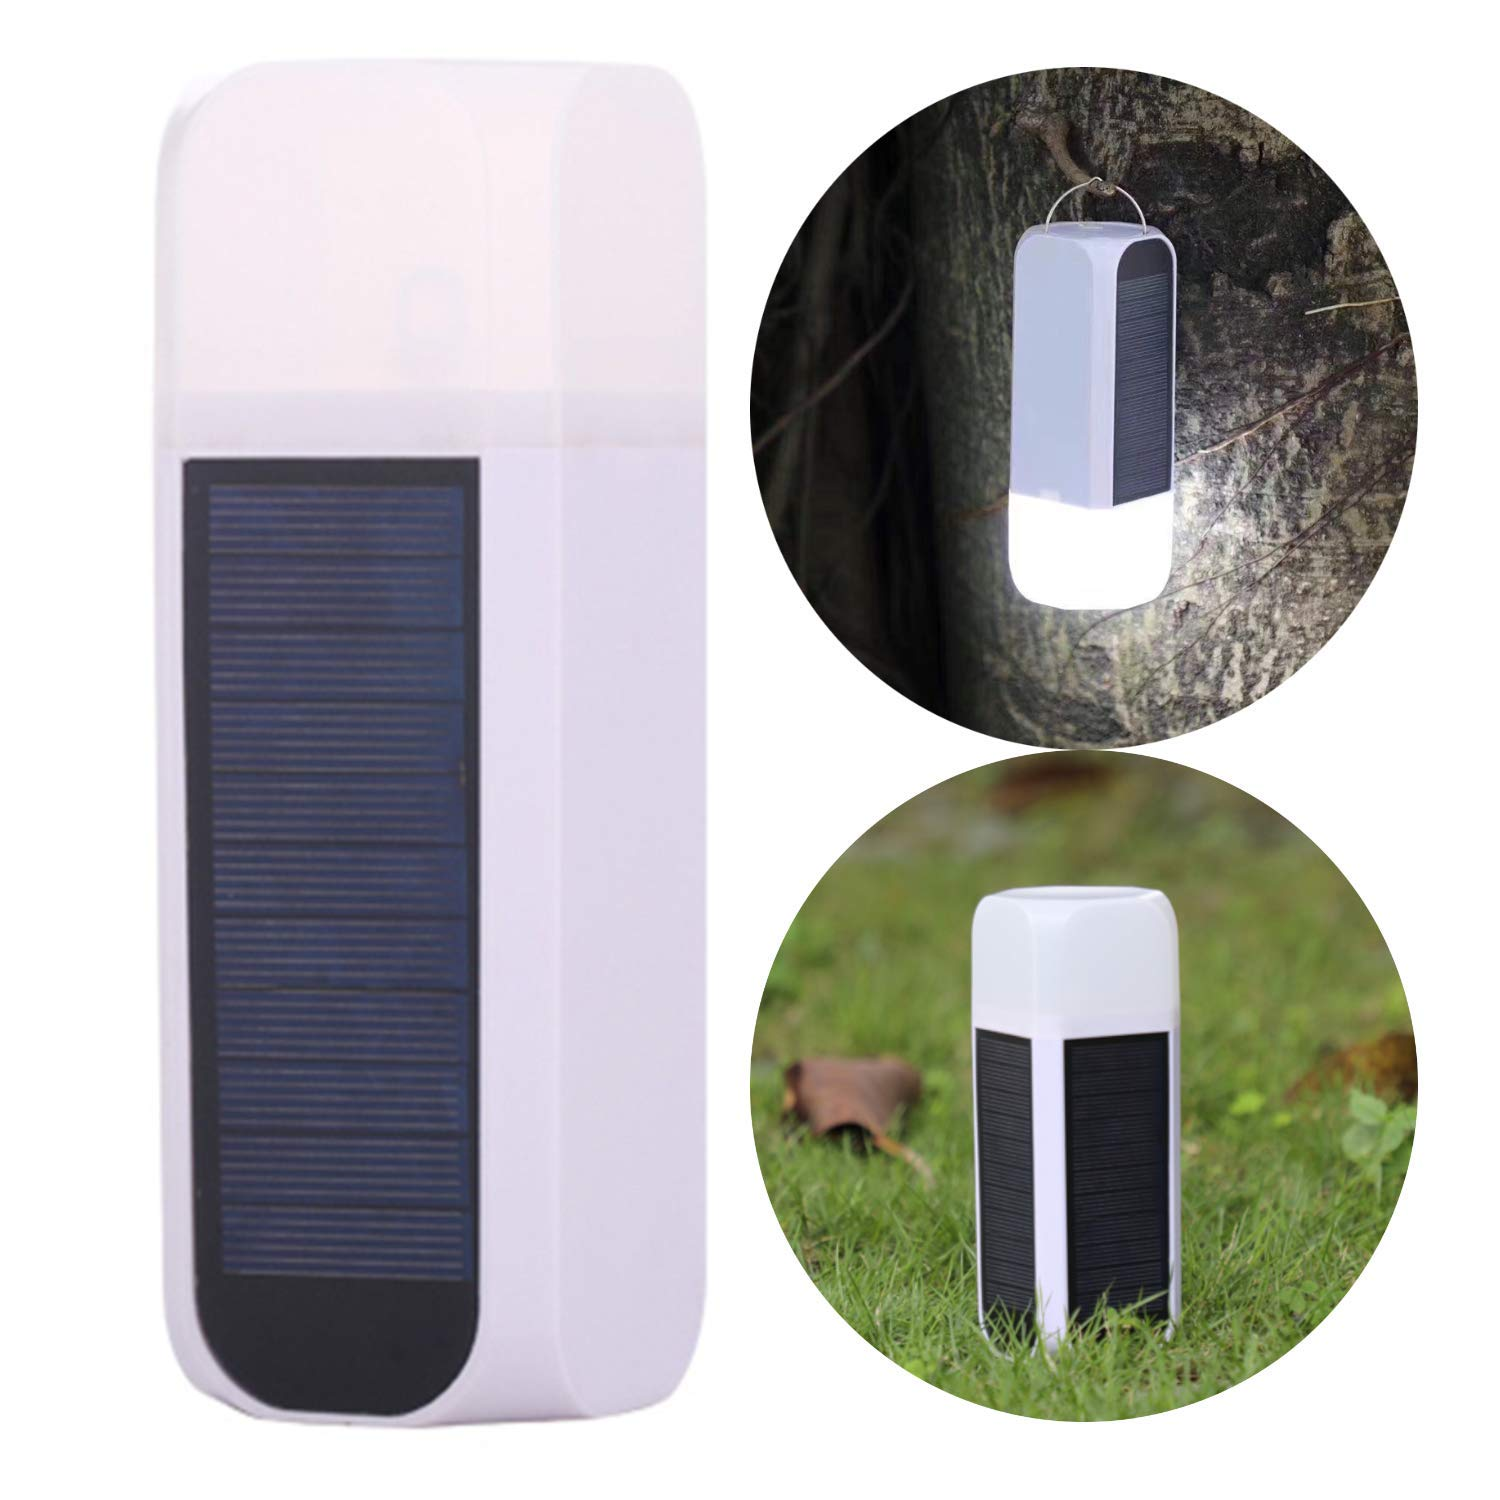 with 3000mAh Power Bank IP65 Waterproof and Portable LED Camping Lantern and Camping Lights Zoojee Super Bright Solar Camping Lantern Home Lantern,USB Rechargeable 21pcs LED Lamp